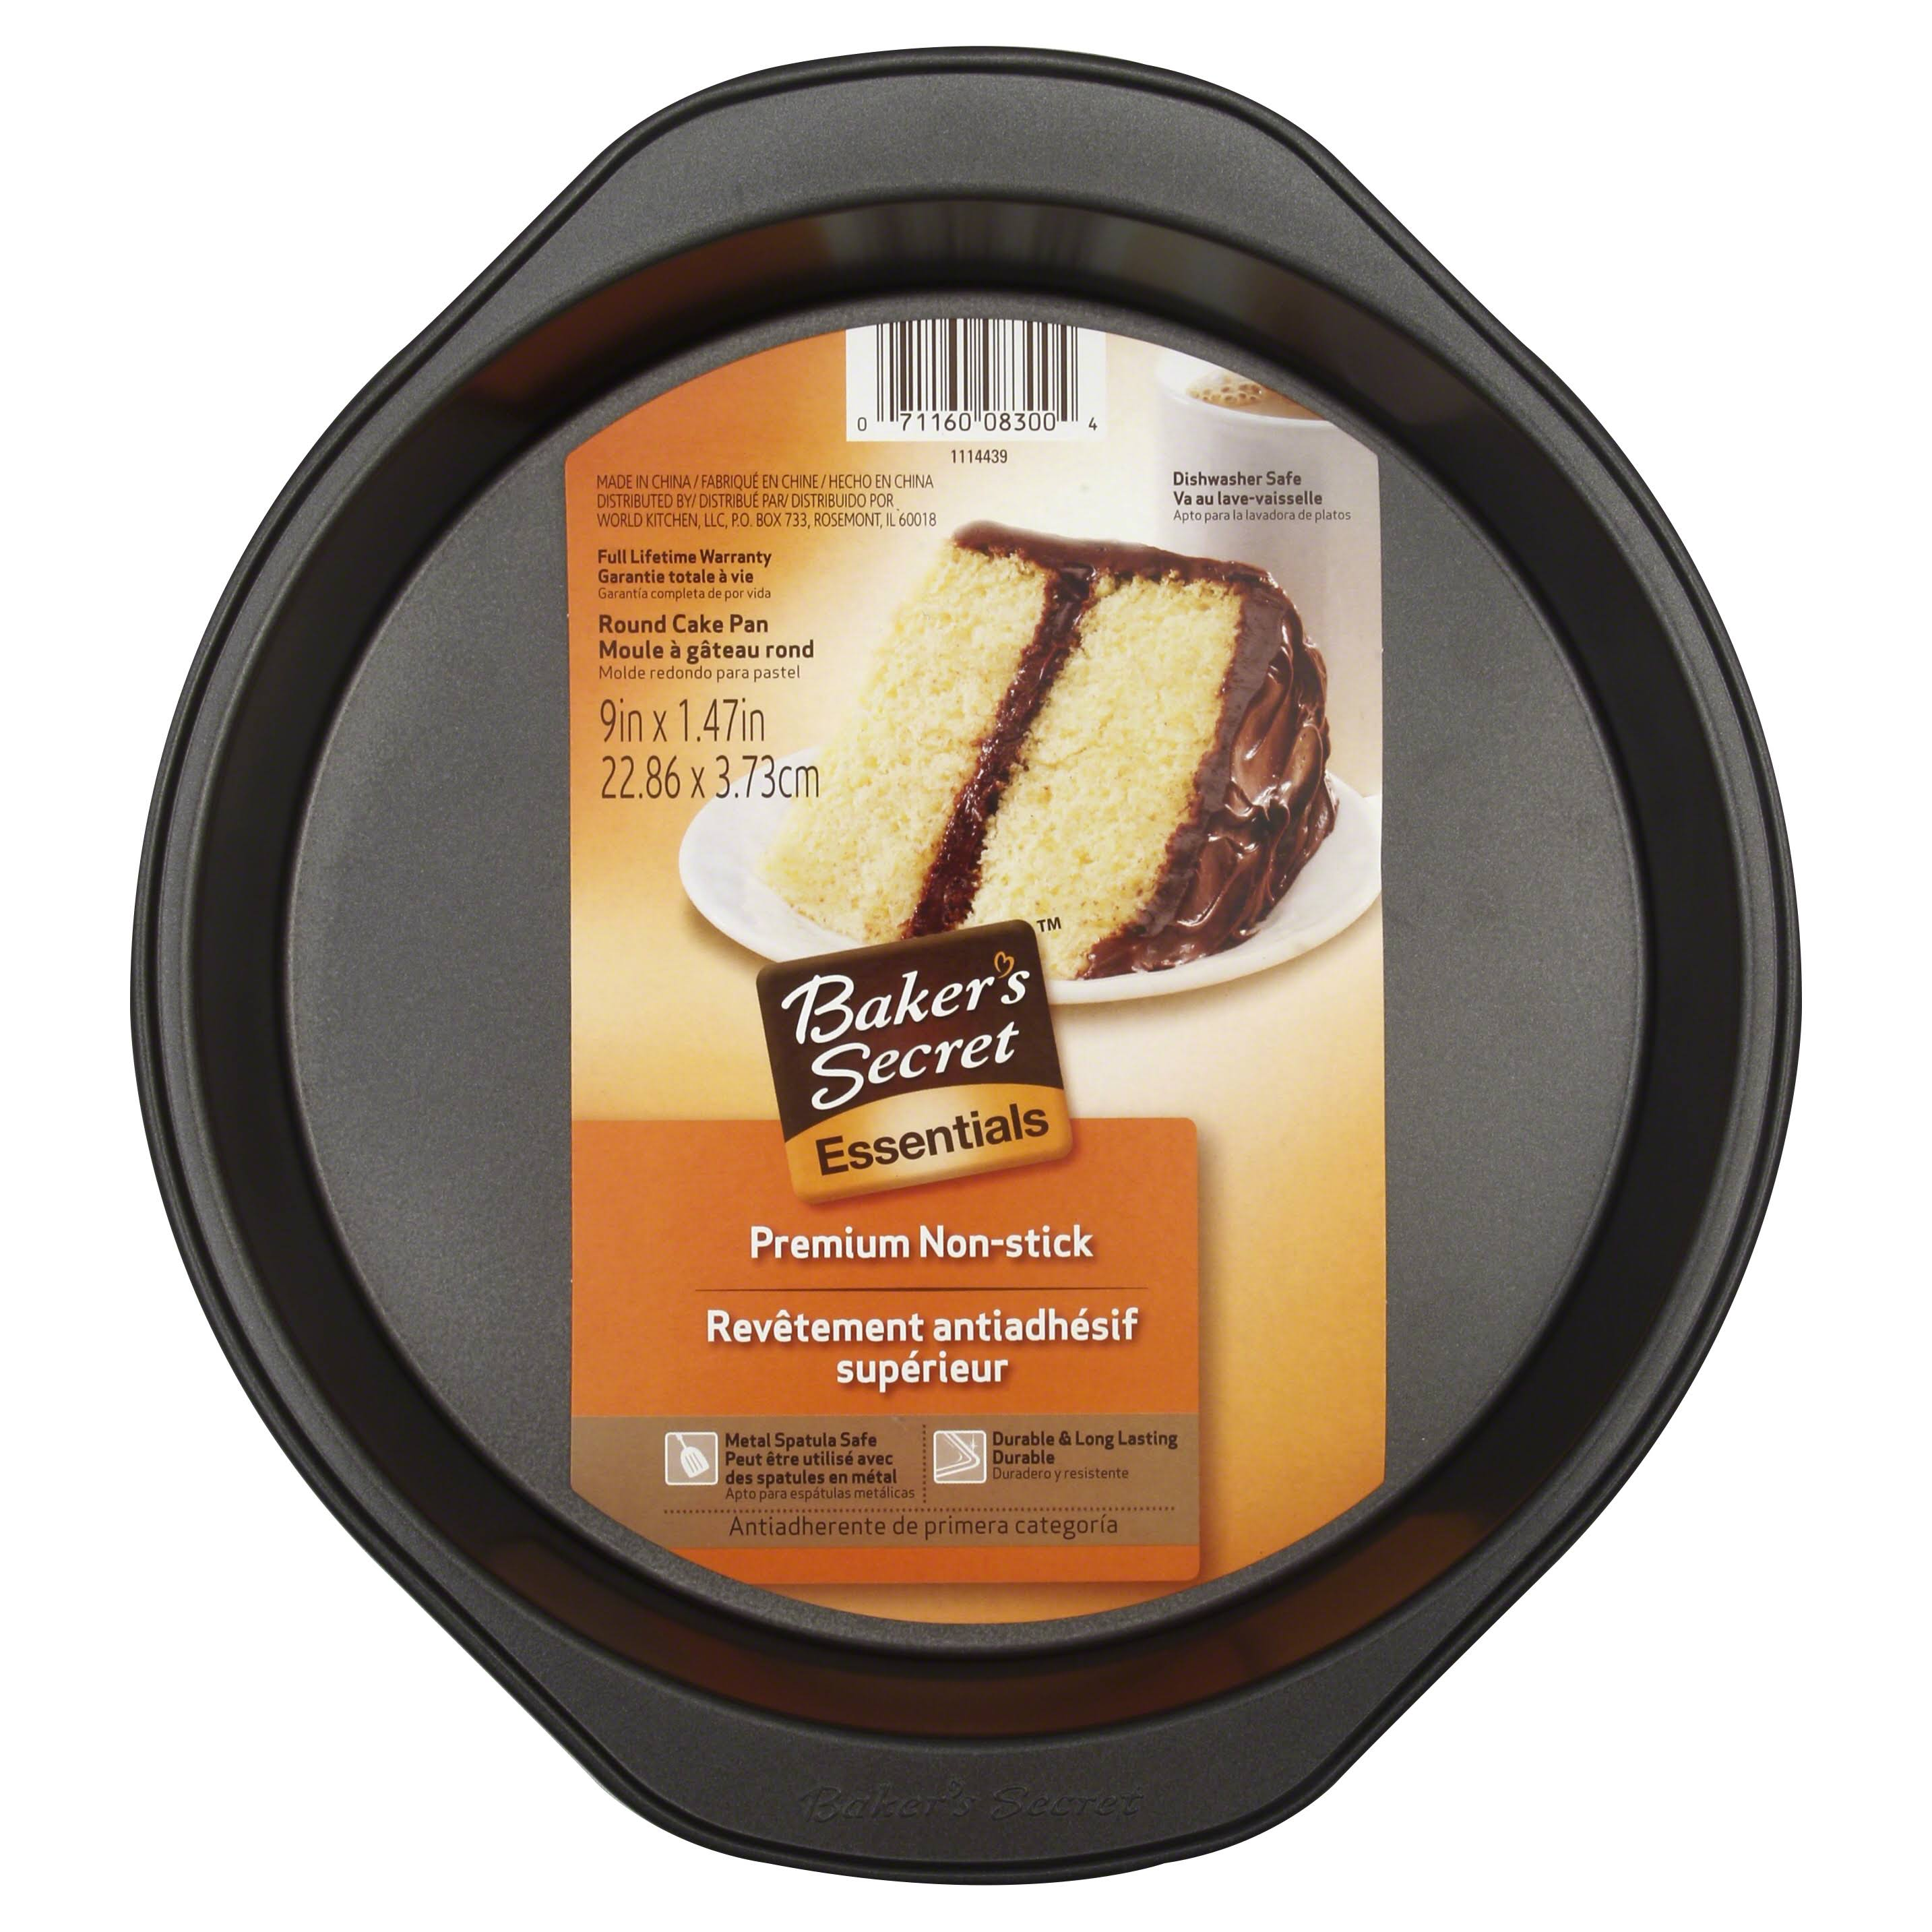 Baker's Secret Essentials Round Cake Pan